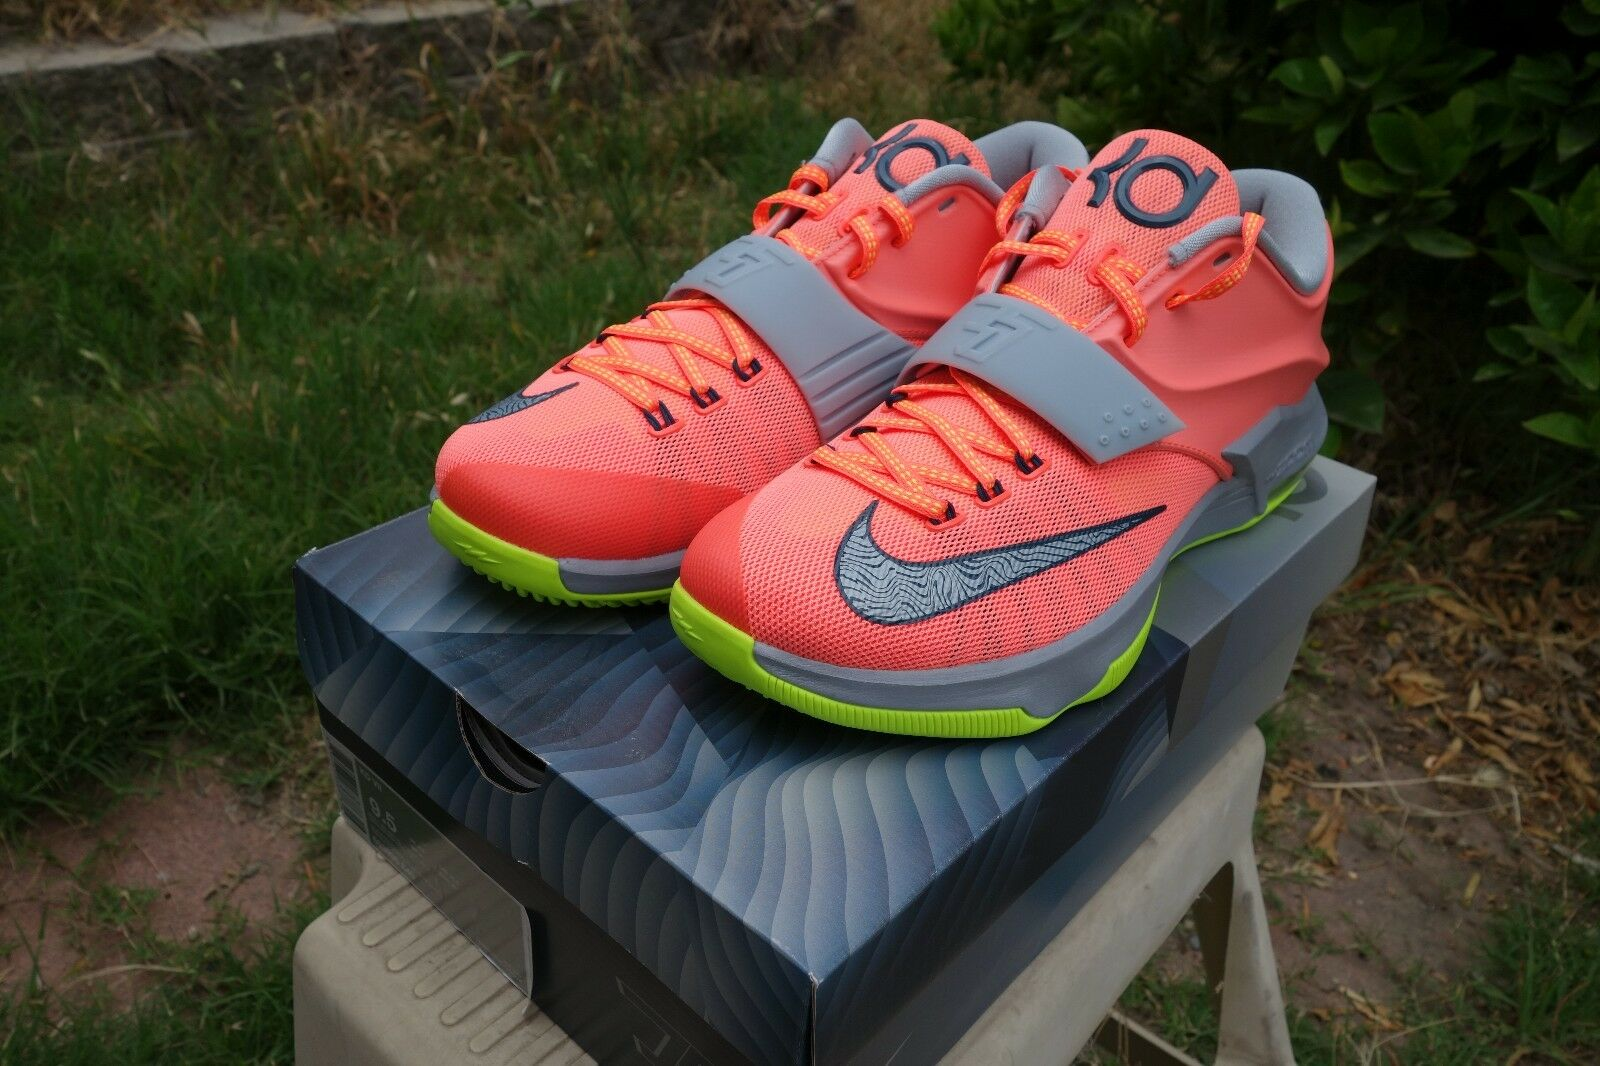 Nike KDVII 35000 Degrees Taille 9.5 653996-840